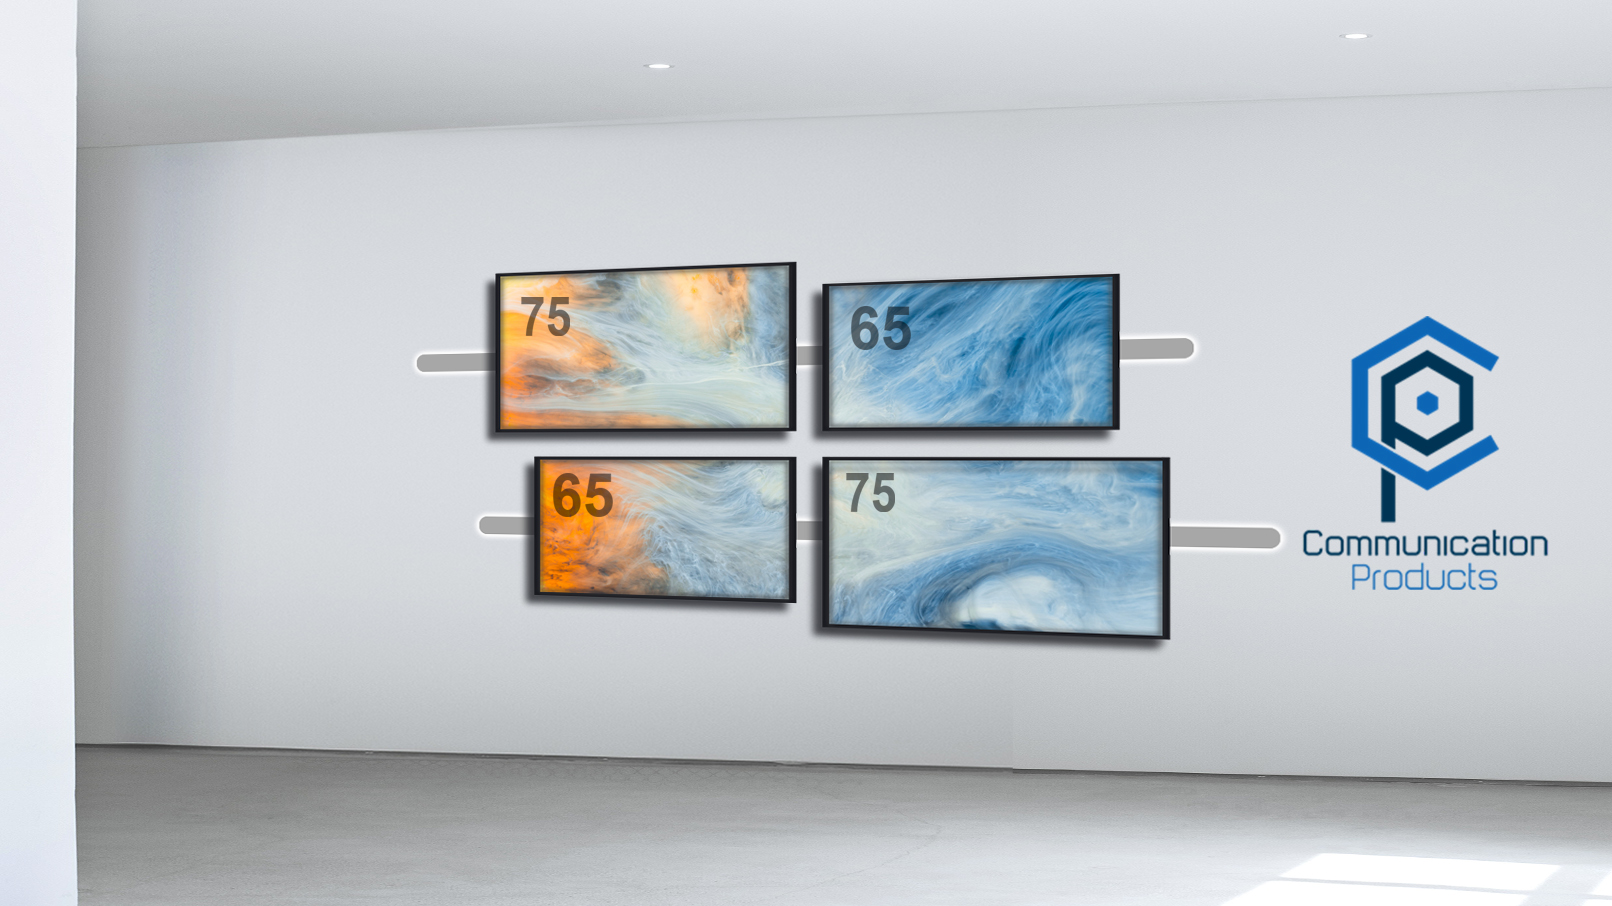 Tv wall rendition 65-75 for web site